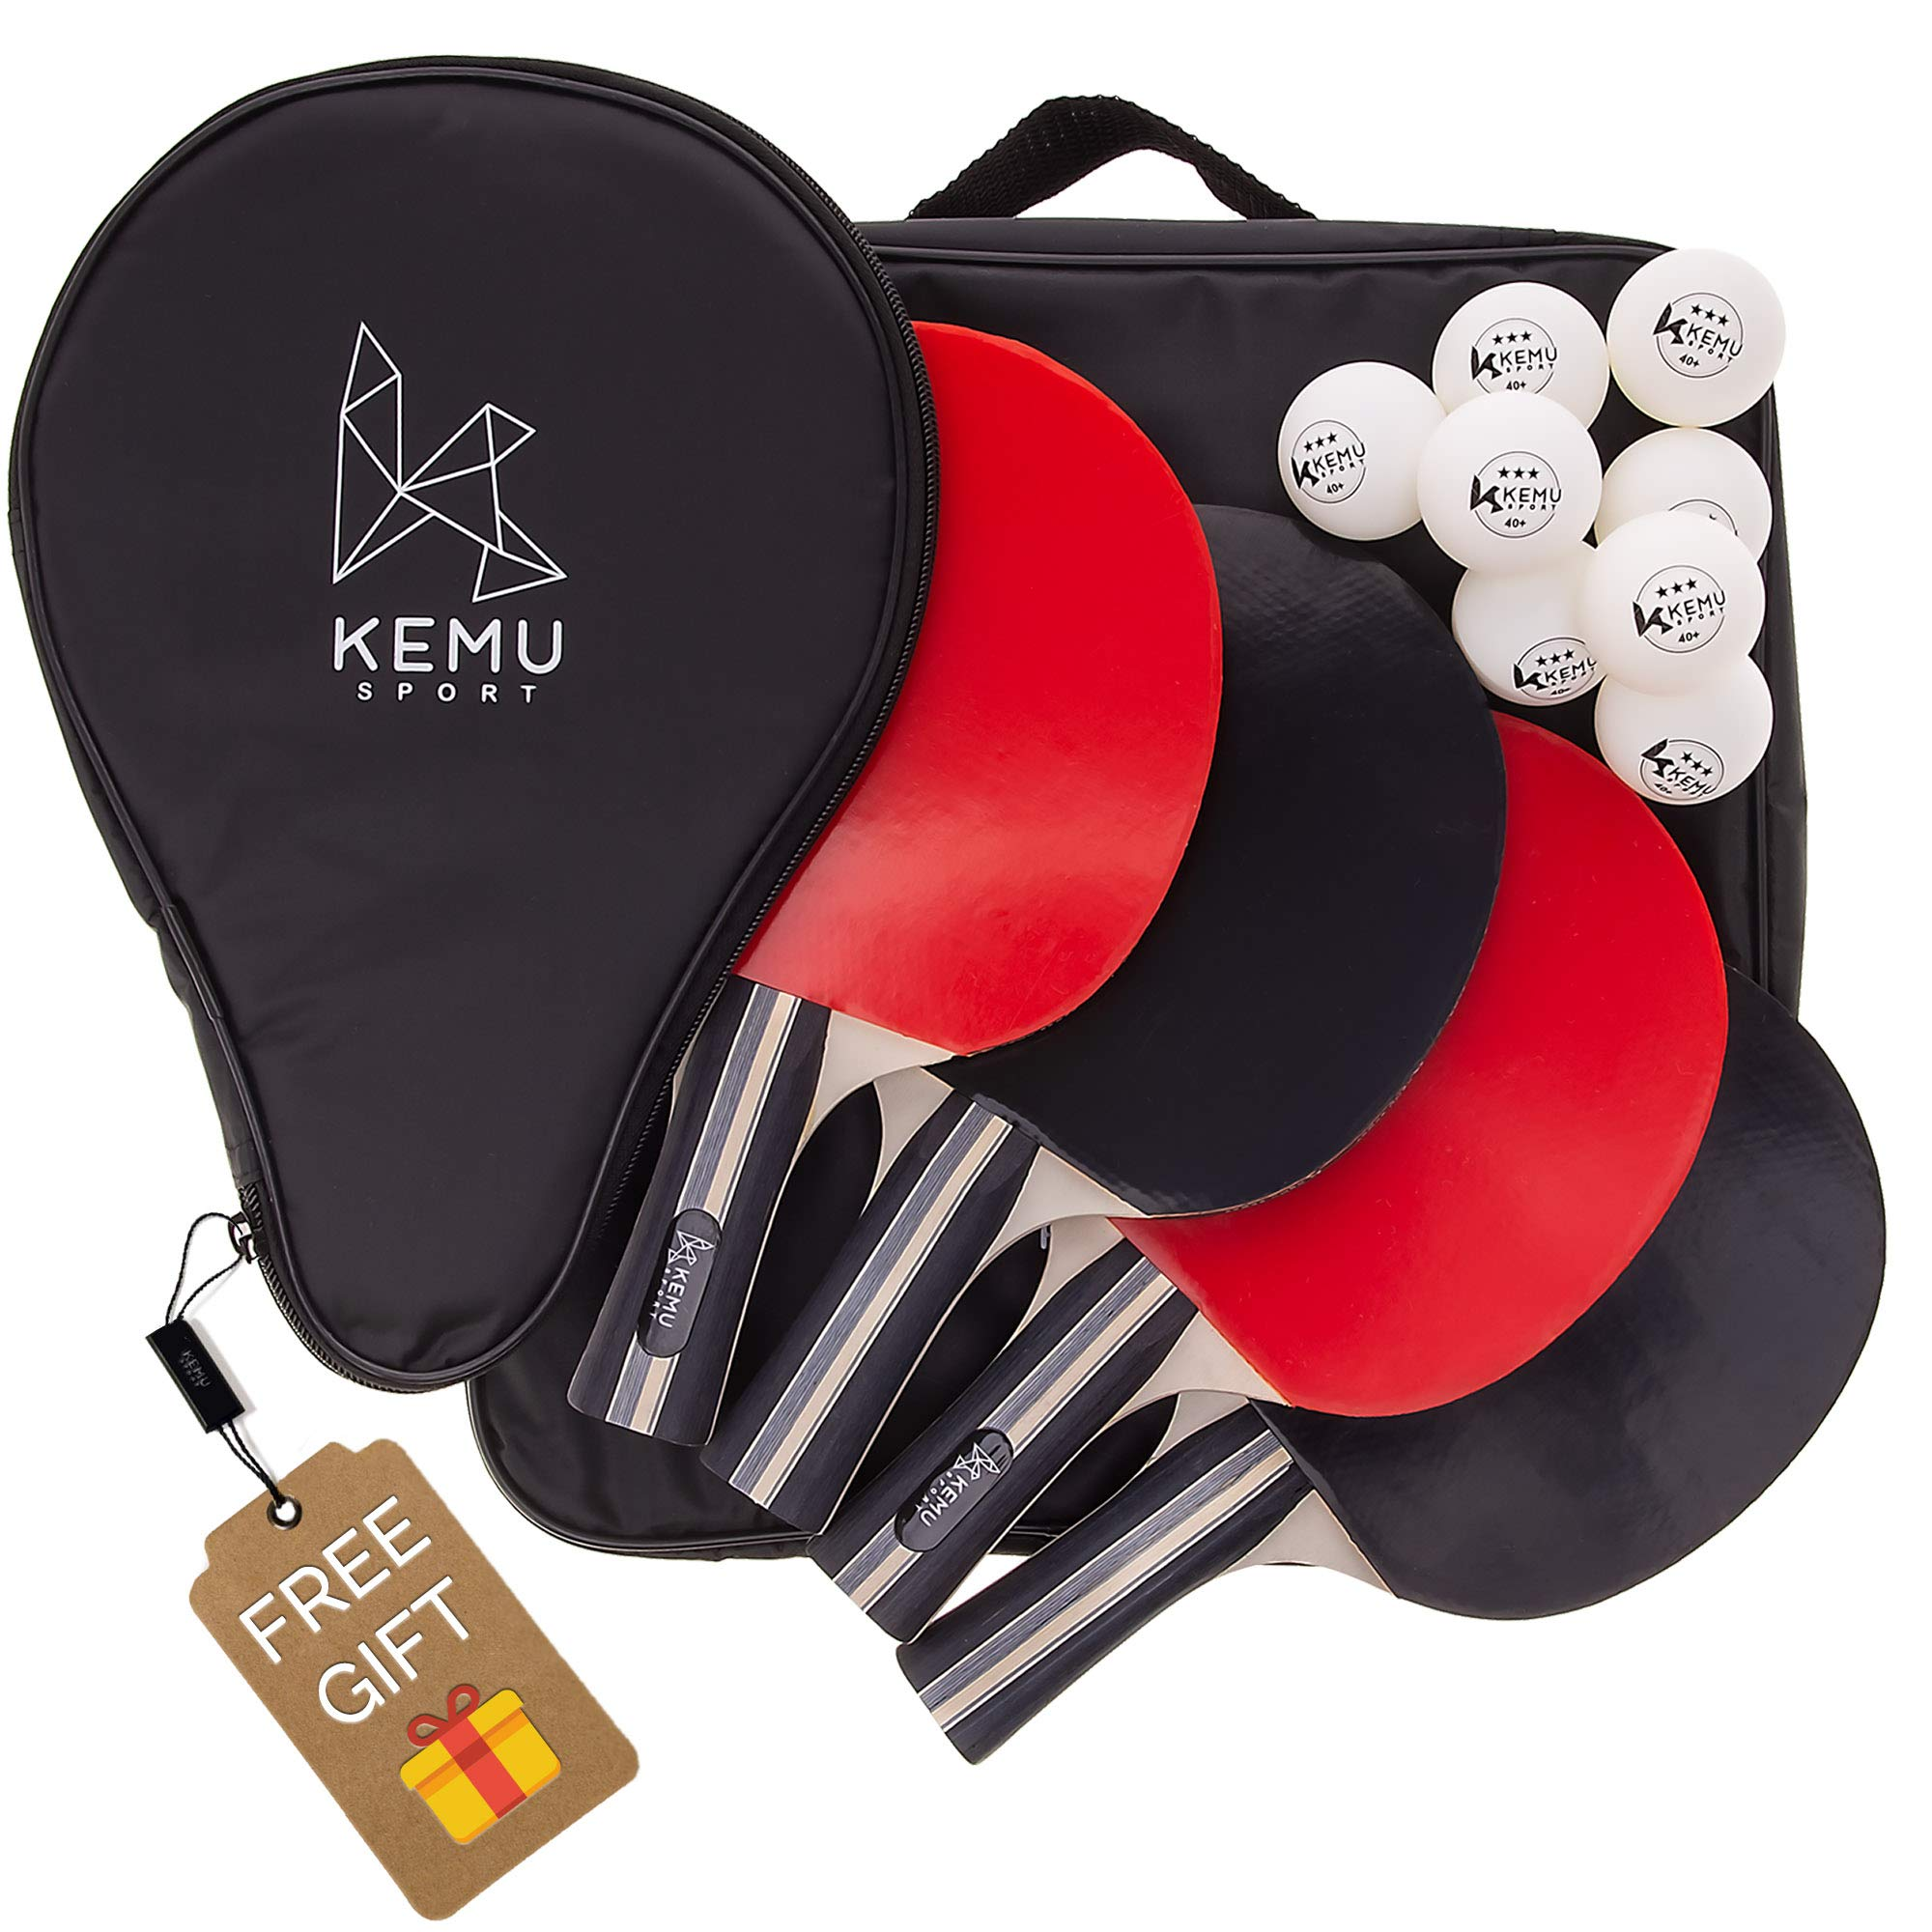 Ping Pong Paddle Set of 4 - Includes Case & 1 FREE Racket Cover - Professional Grade Table Tennis Rackets - 8x 3-Star ITTF Standard Balls - Superior Bat Control, Comfortable Paddles, Unbeatable Spin by Kemu Sport